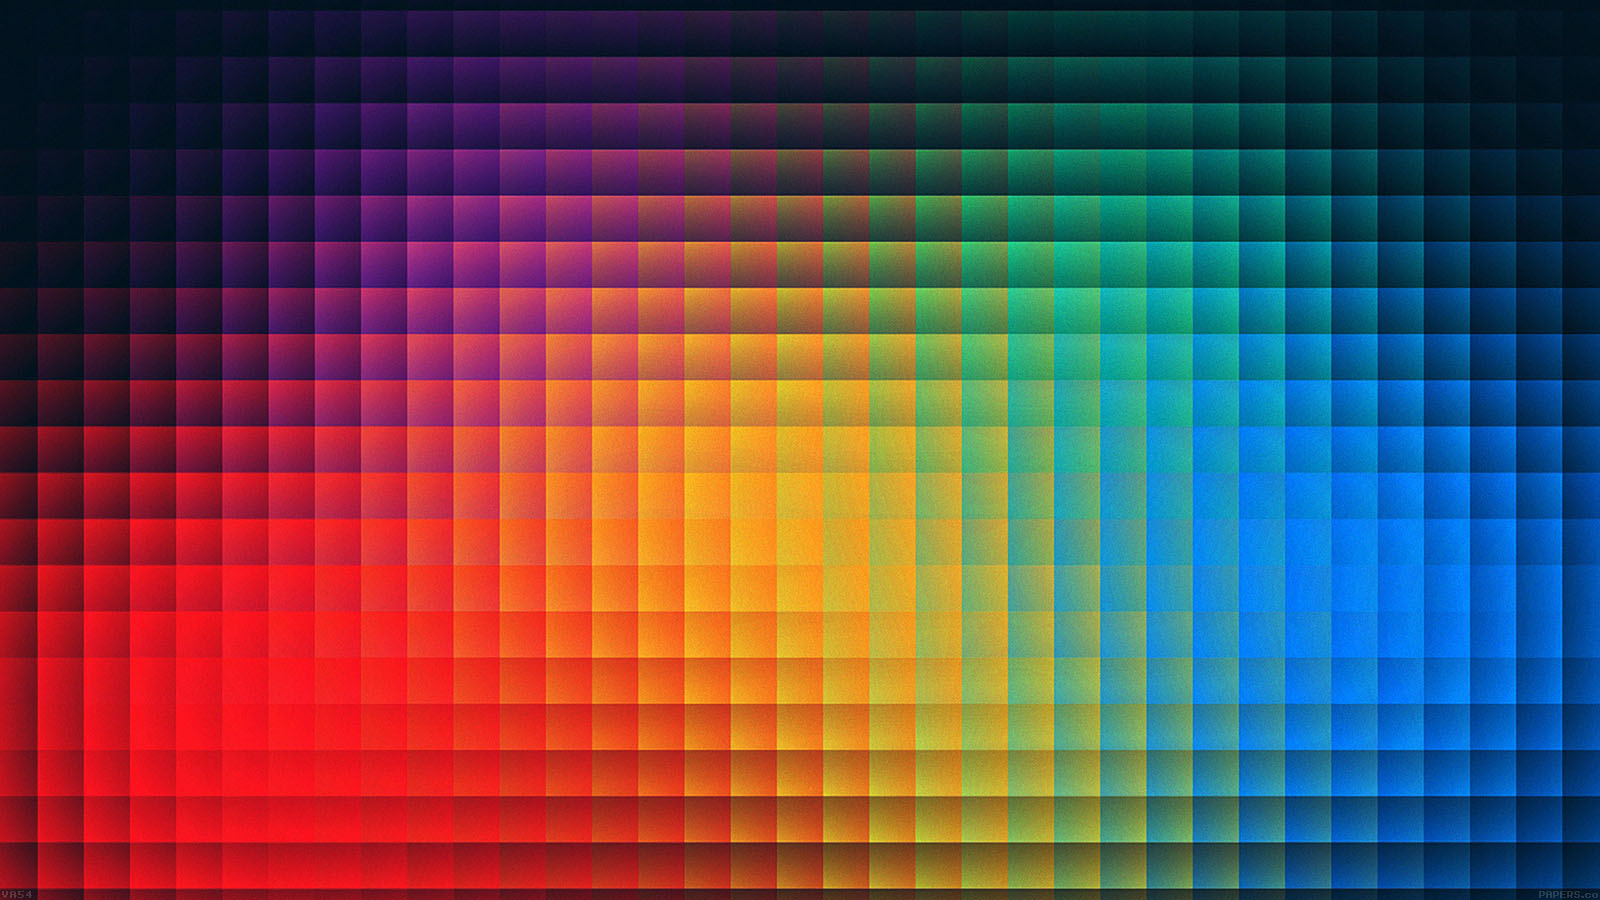 Android Wallpaper Fall Va54 Rainbow Pixels Pattern Papers Co